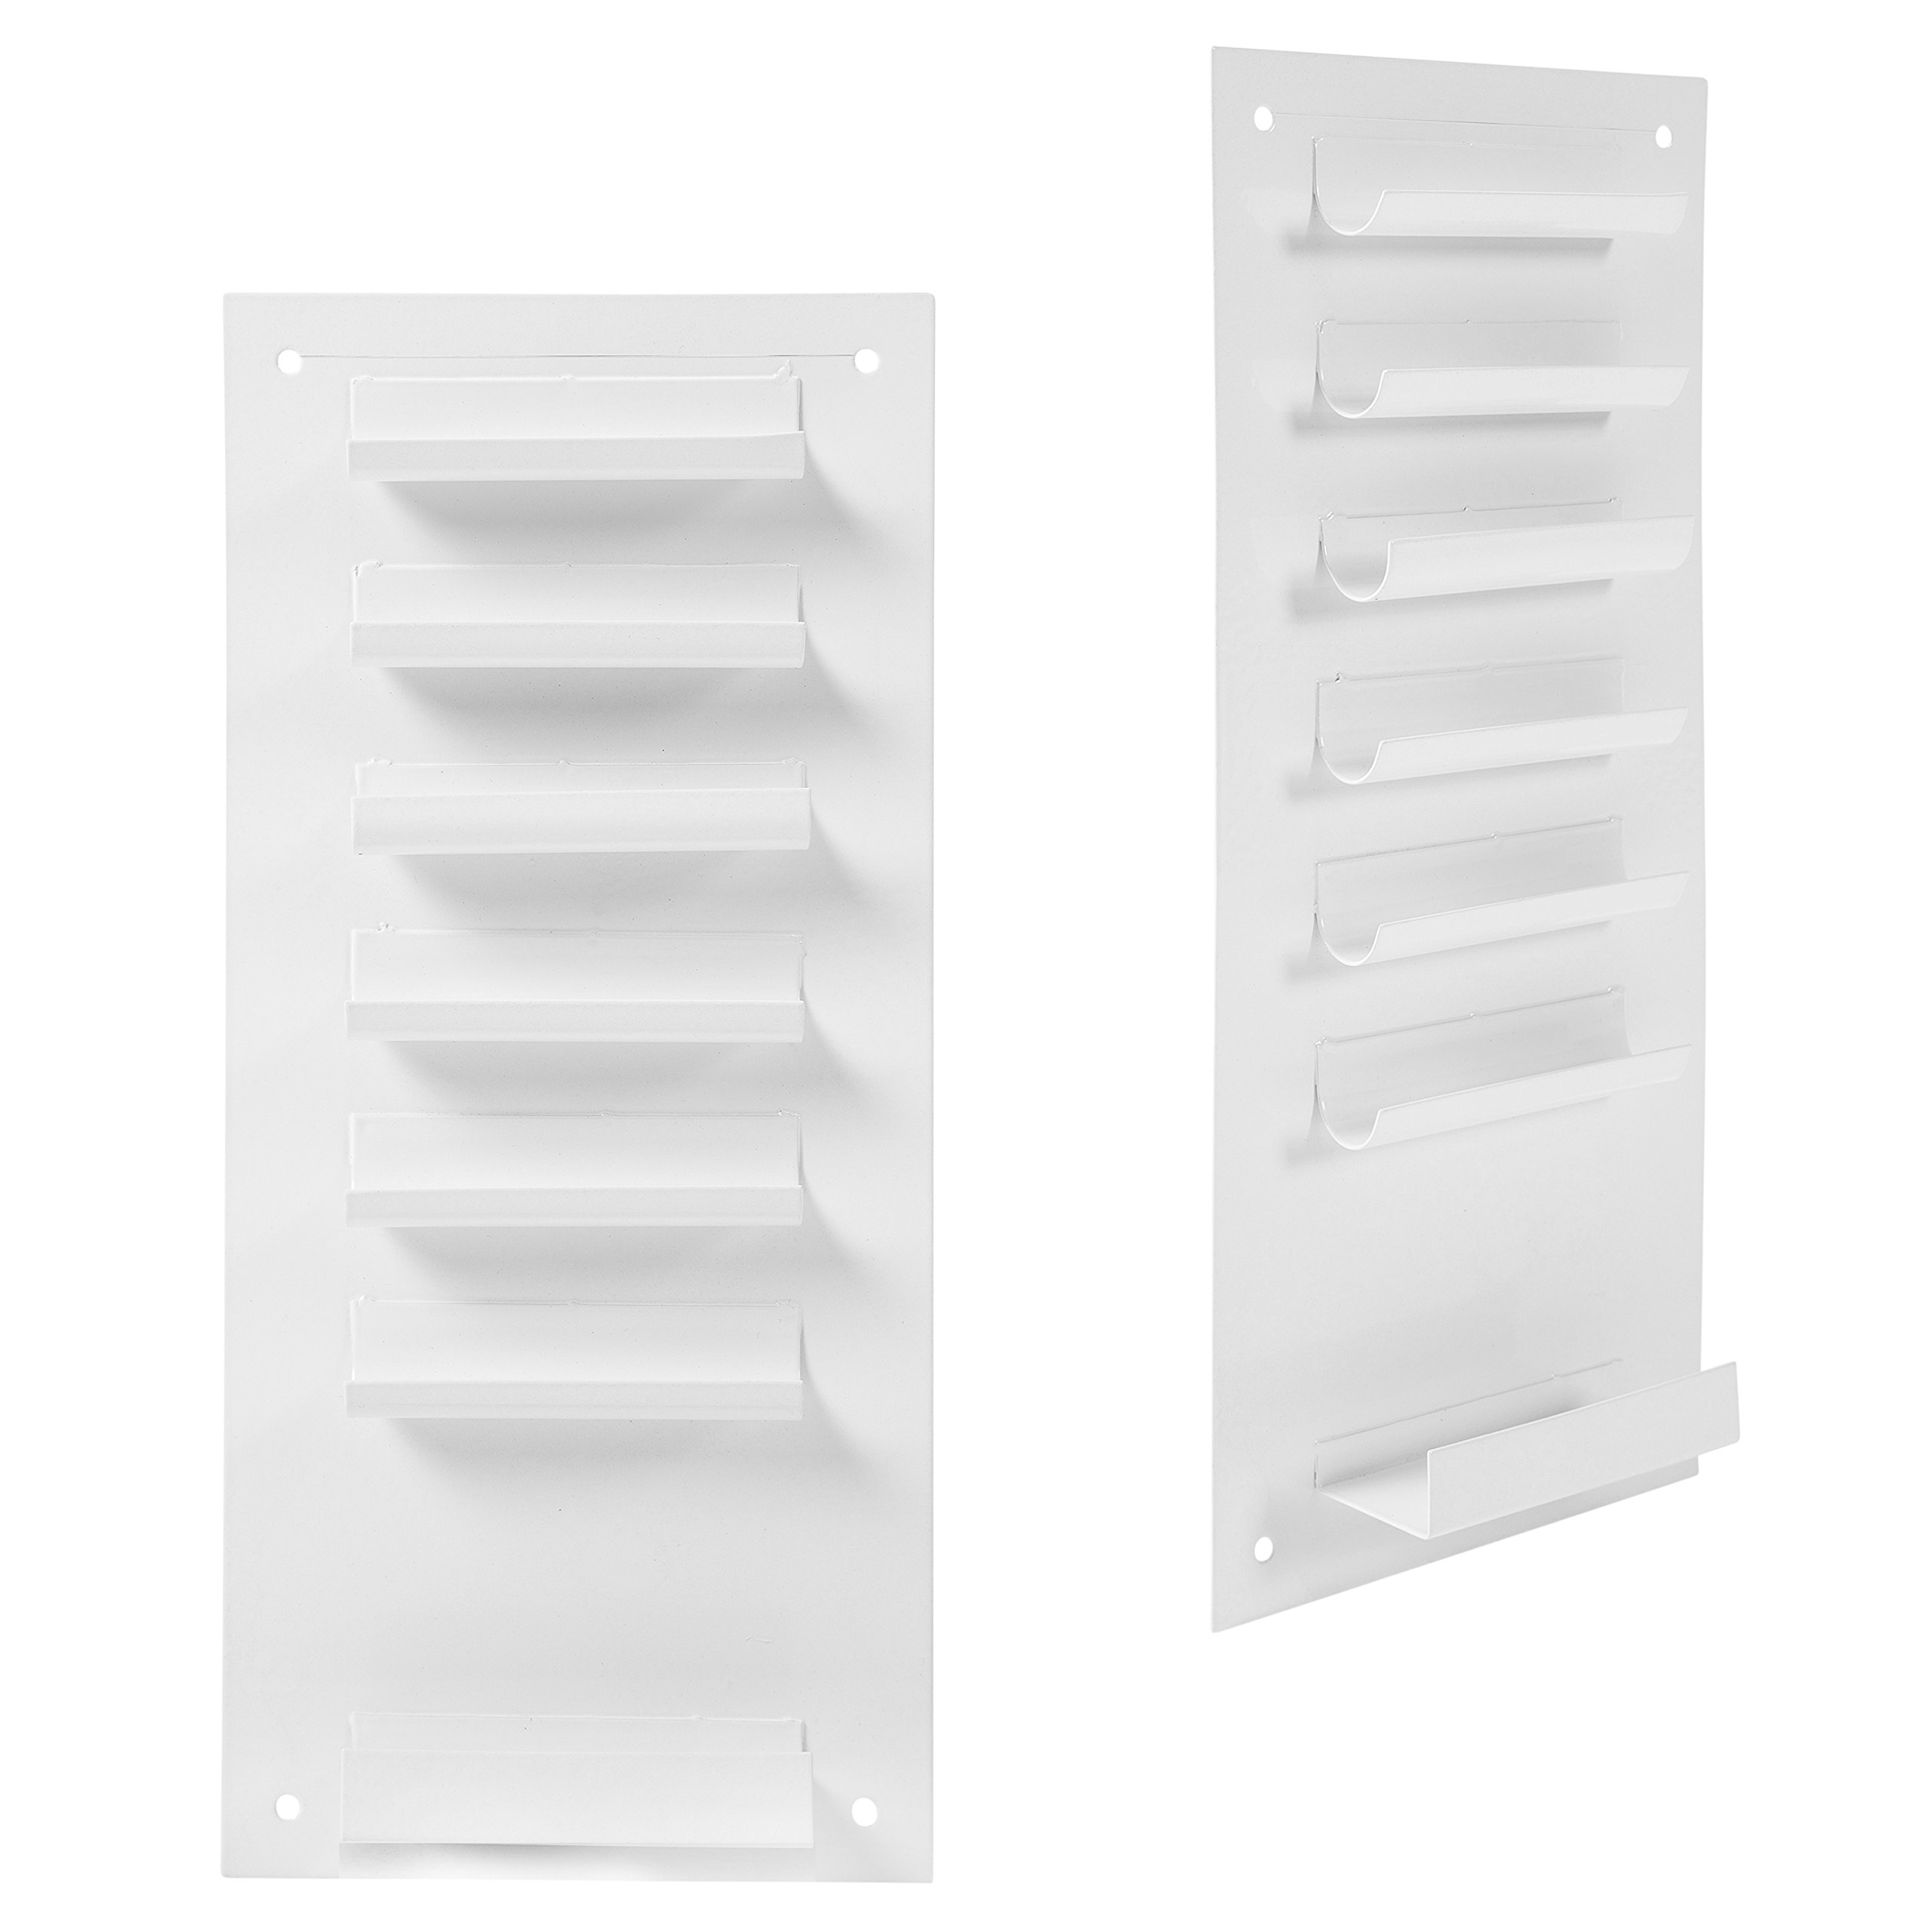 6-Slot Wall Mounted Metal Dry Erase Marker and Eraser Holder/Vertical Storage System, White (Set of 2) by MyGift (Image #2)